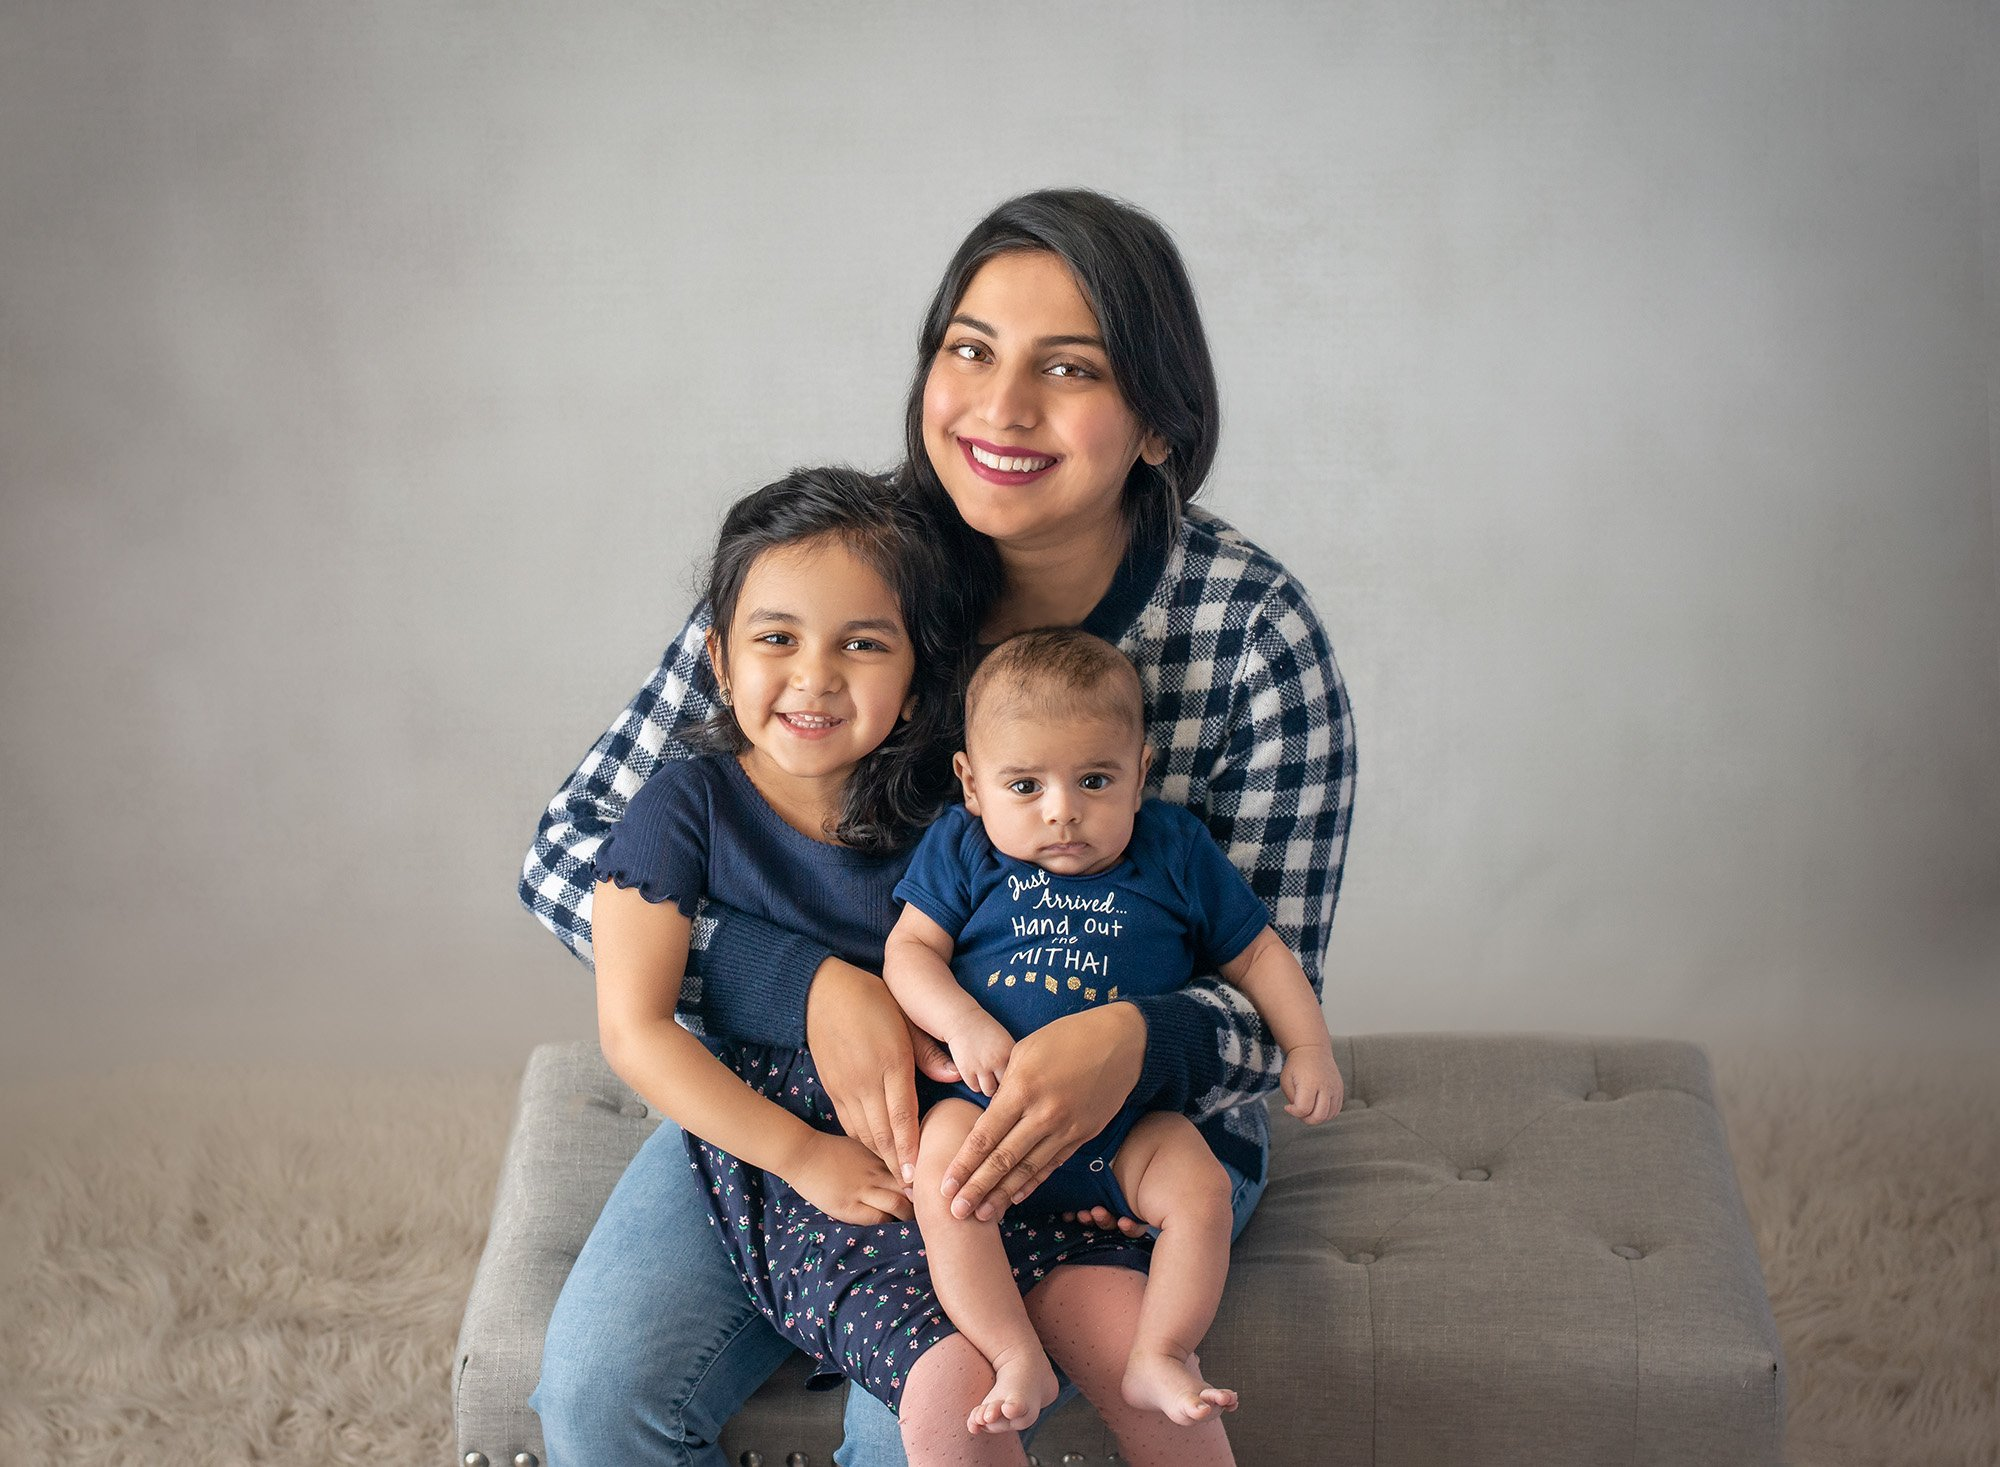 mom smiling holding young daughter and newborn baby boy all dressed in navy blue